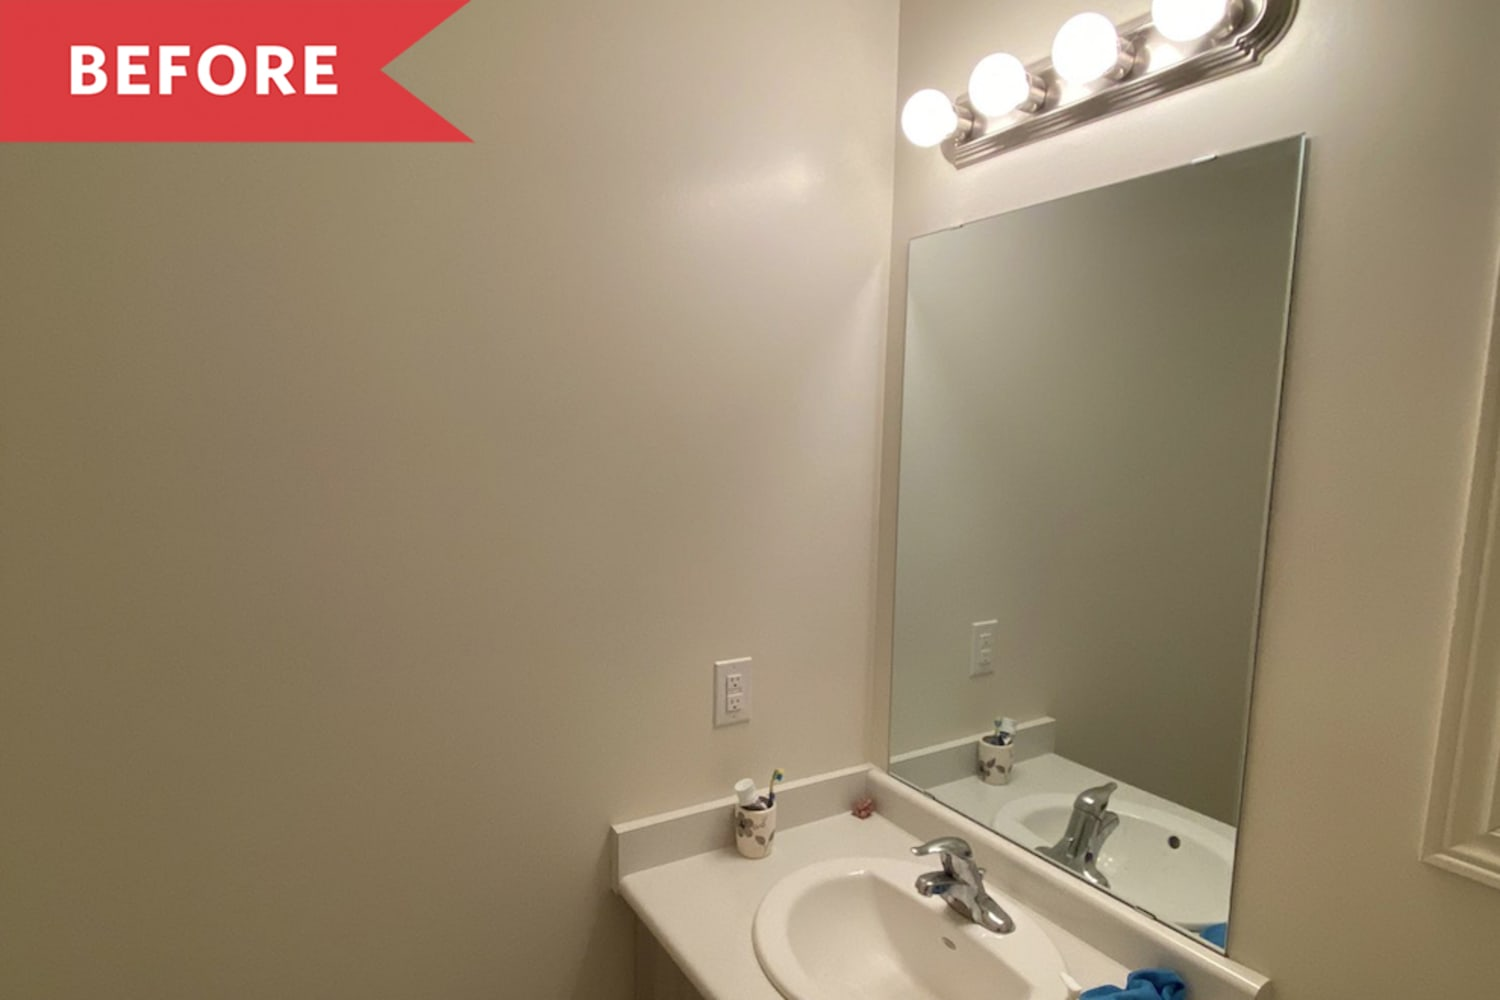 Before and After: A $400 Revamp Turns a Bland Powder Room into a Chic Little Oasis